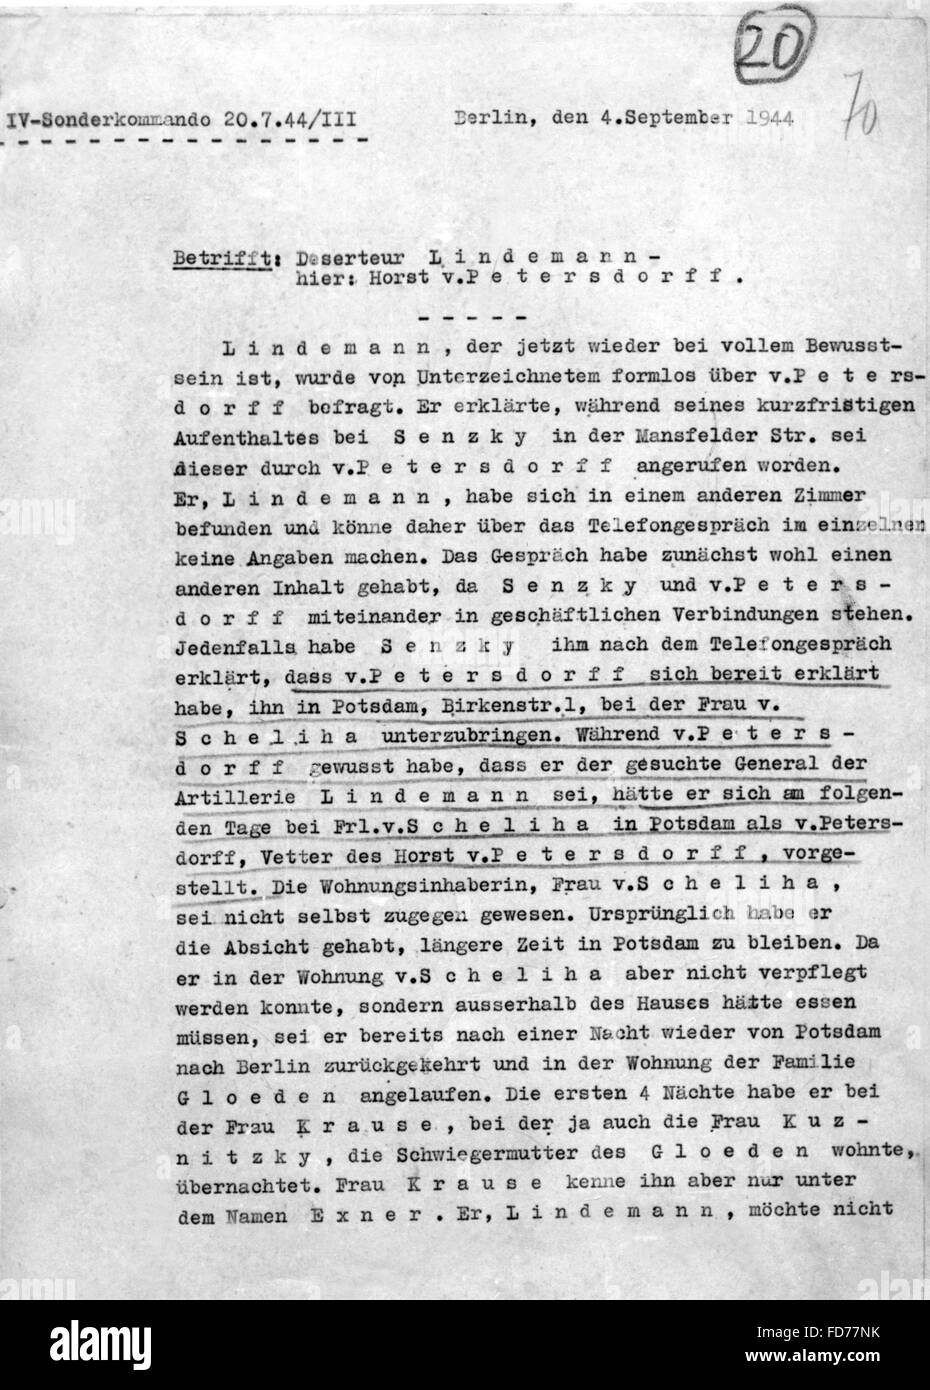 Interrogation report of the attack of 20 July 1944 - Stock Image